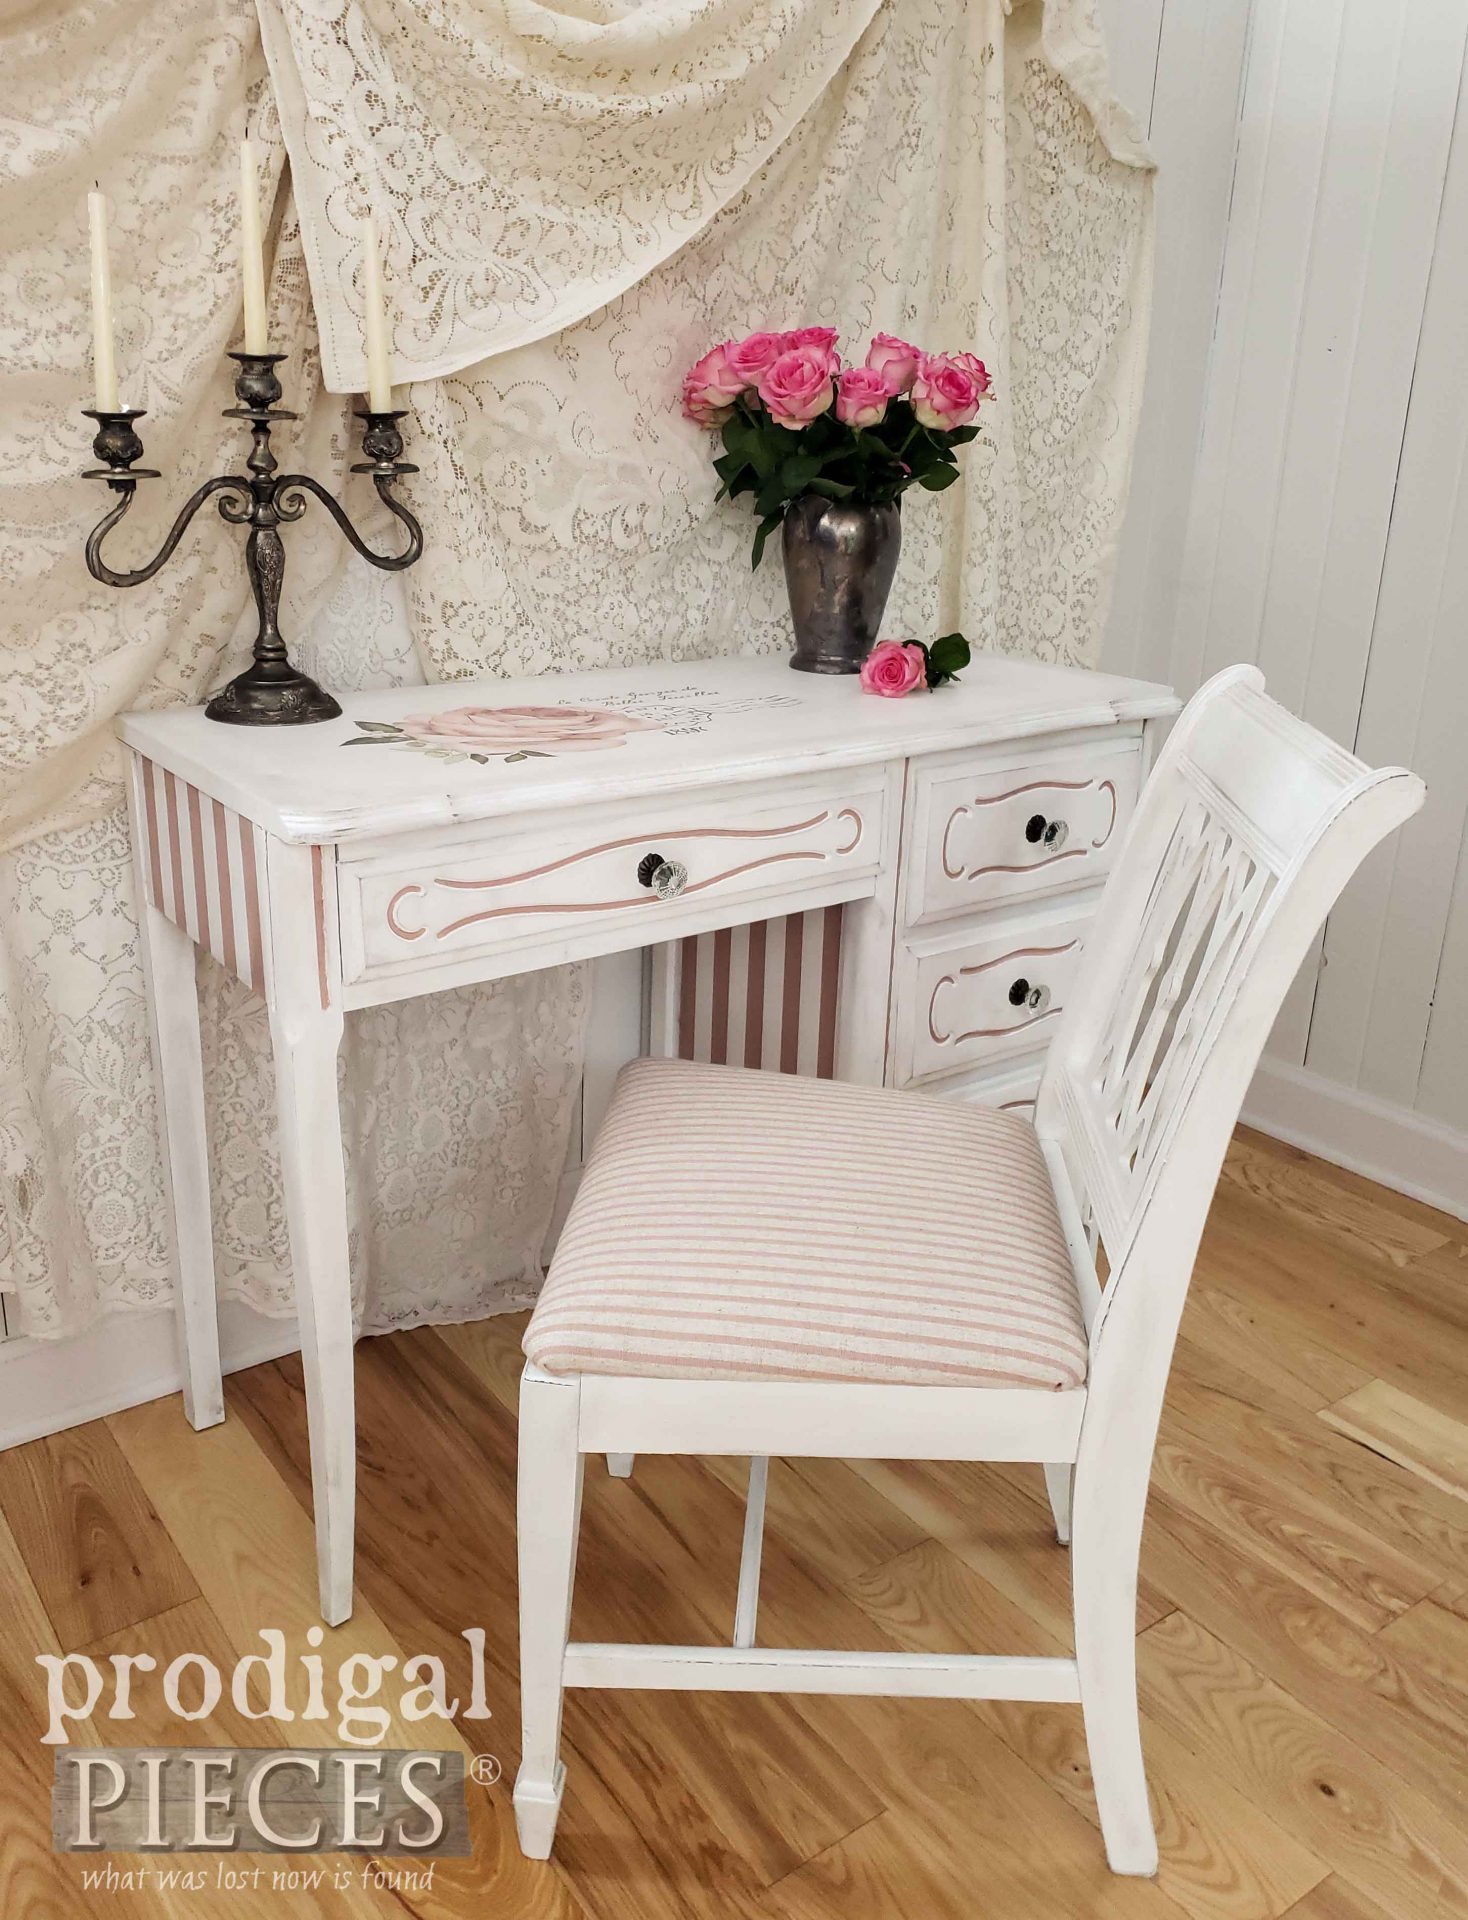 Vintage White French Provincial Desk Set Updated by Larissa of Prodigal Pieces | prodigalpieces.com #prodigalpieces #diy #home #furniture #homedecor #shabbychic